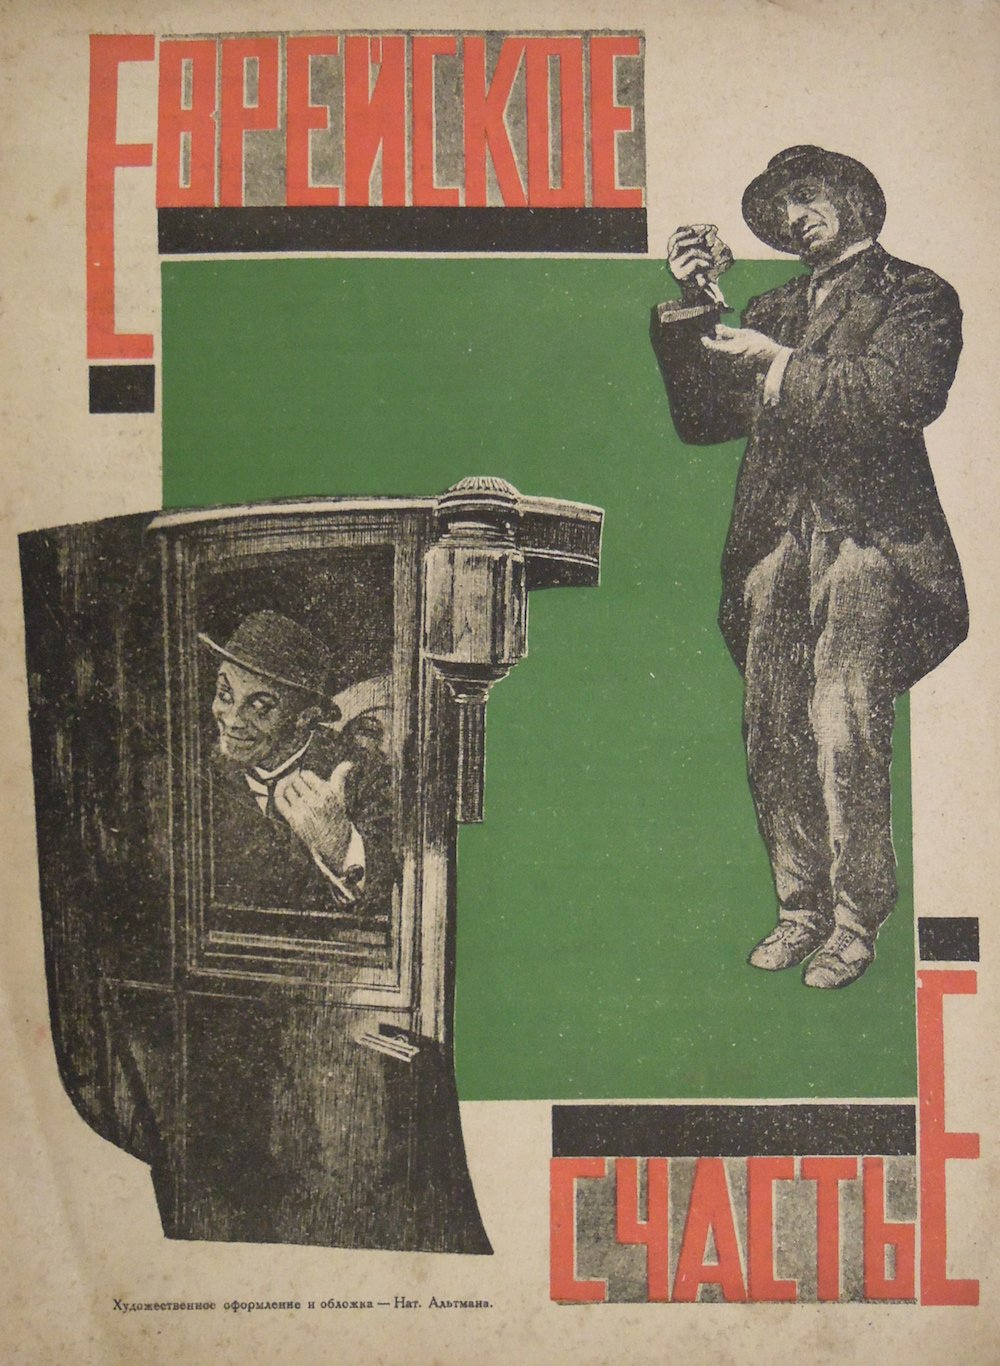 Natan Altman's poster for the 1925 film <em>Jewish Luck</em> (dir. Alexis Granovsky)